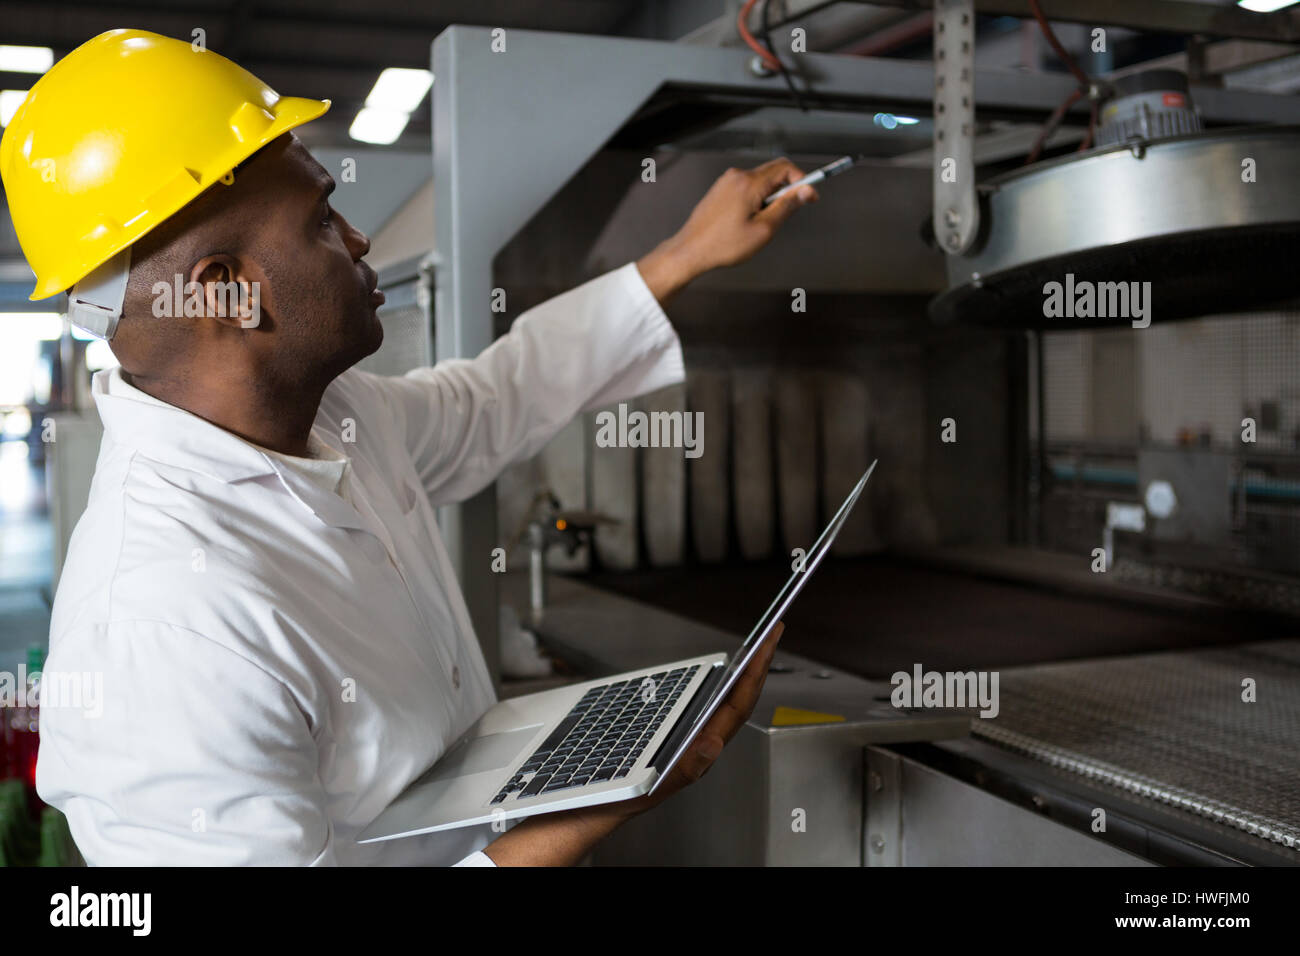 Male worker wearing lab coat while using laptop in juice factory - Stock Image